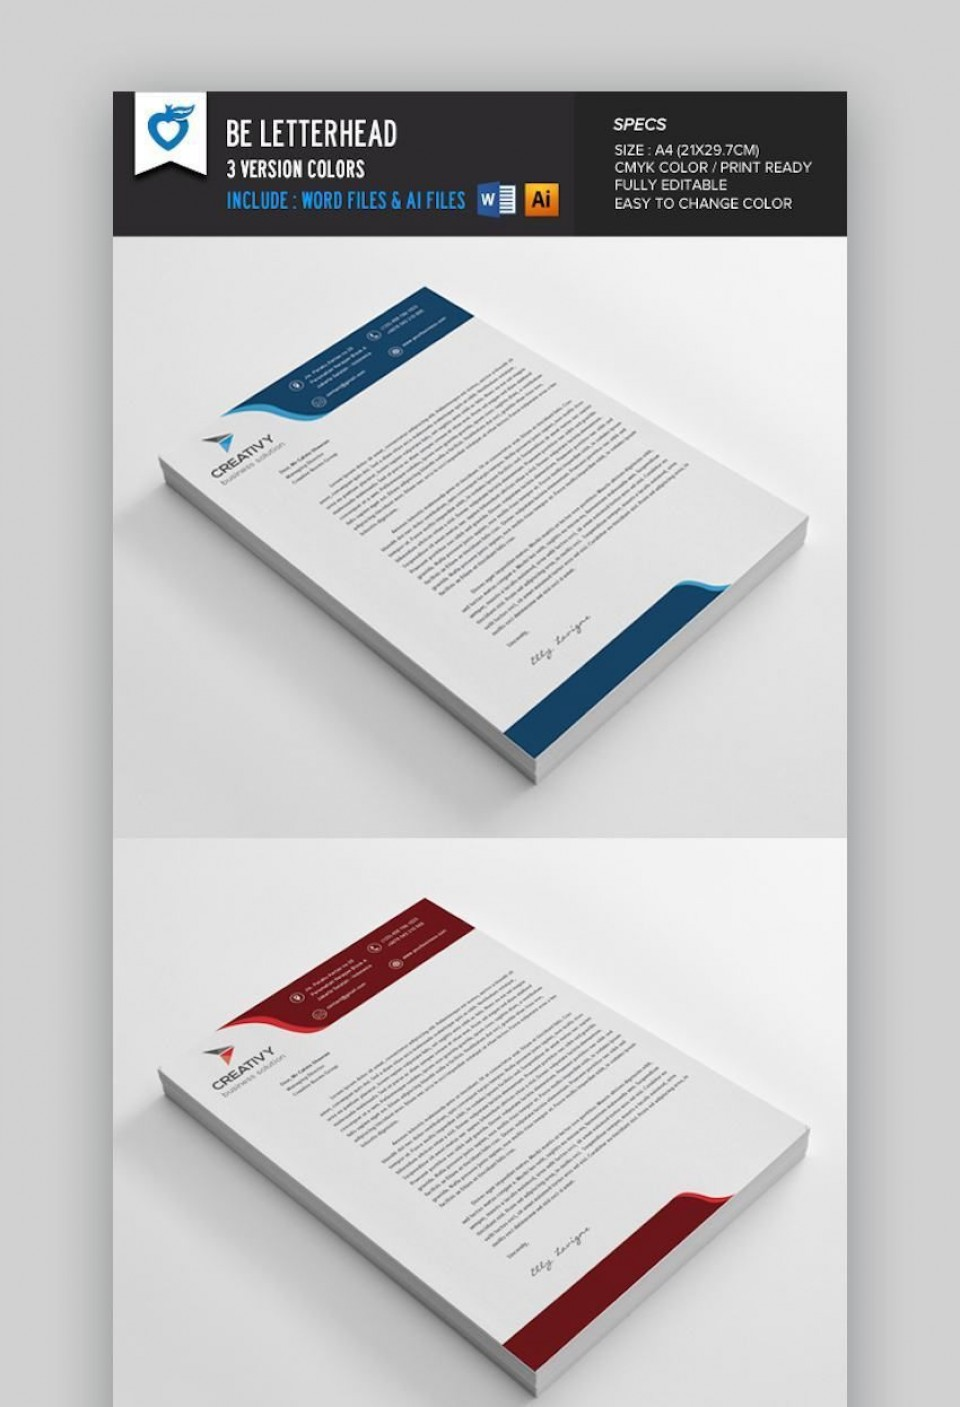 006 Staggering Letterhead Template Free Download Doc Image  Company Format960